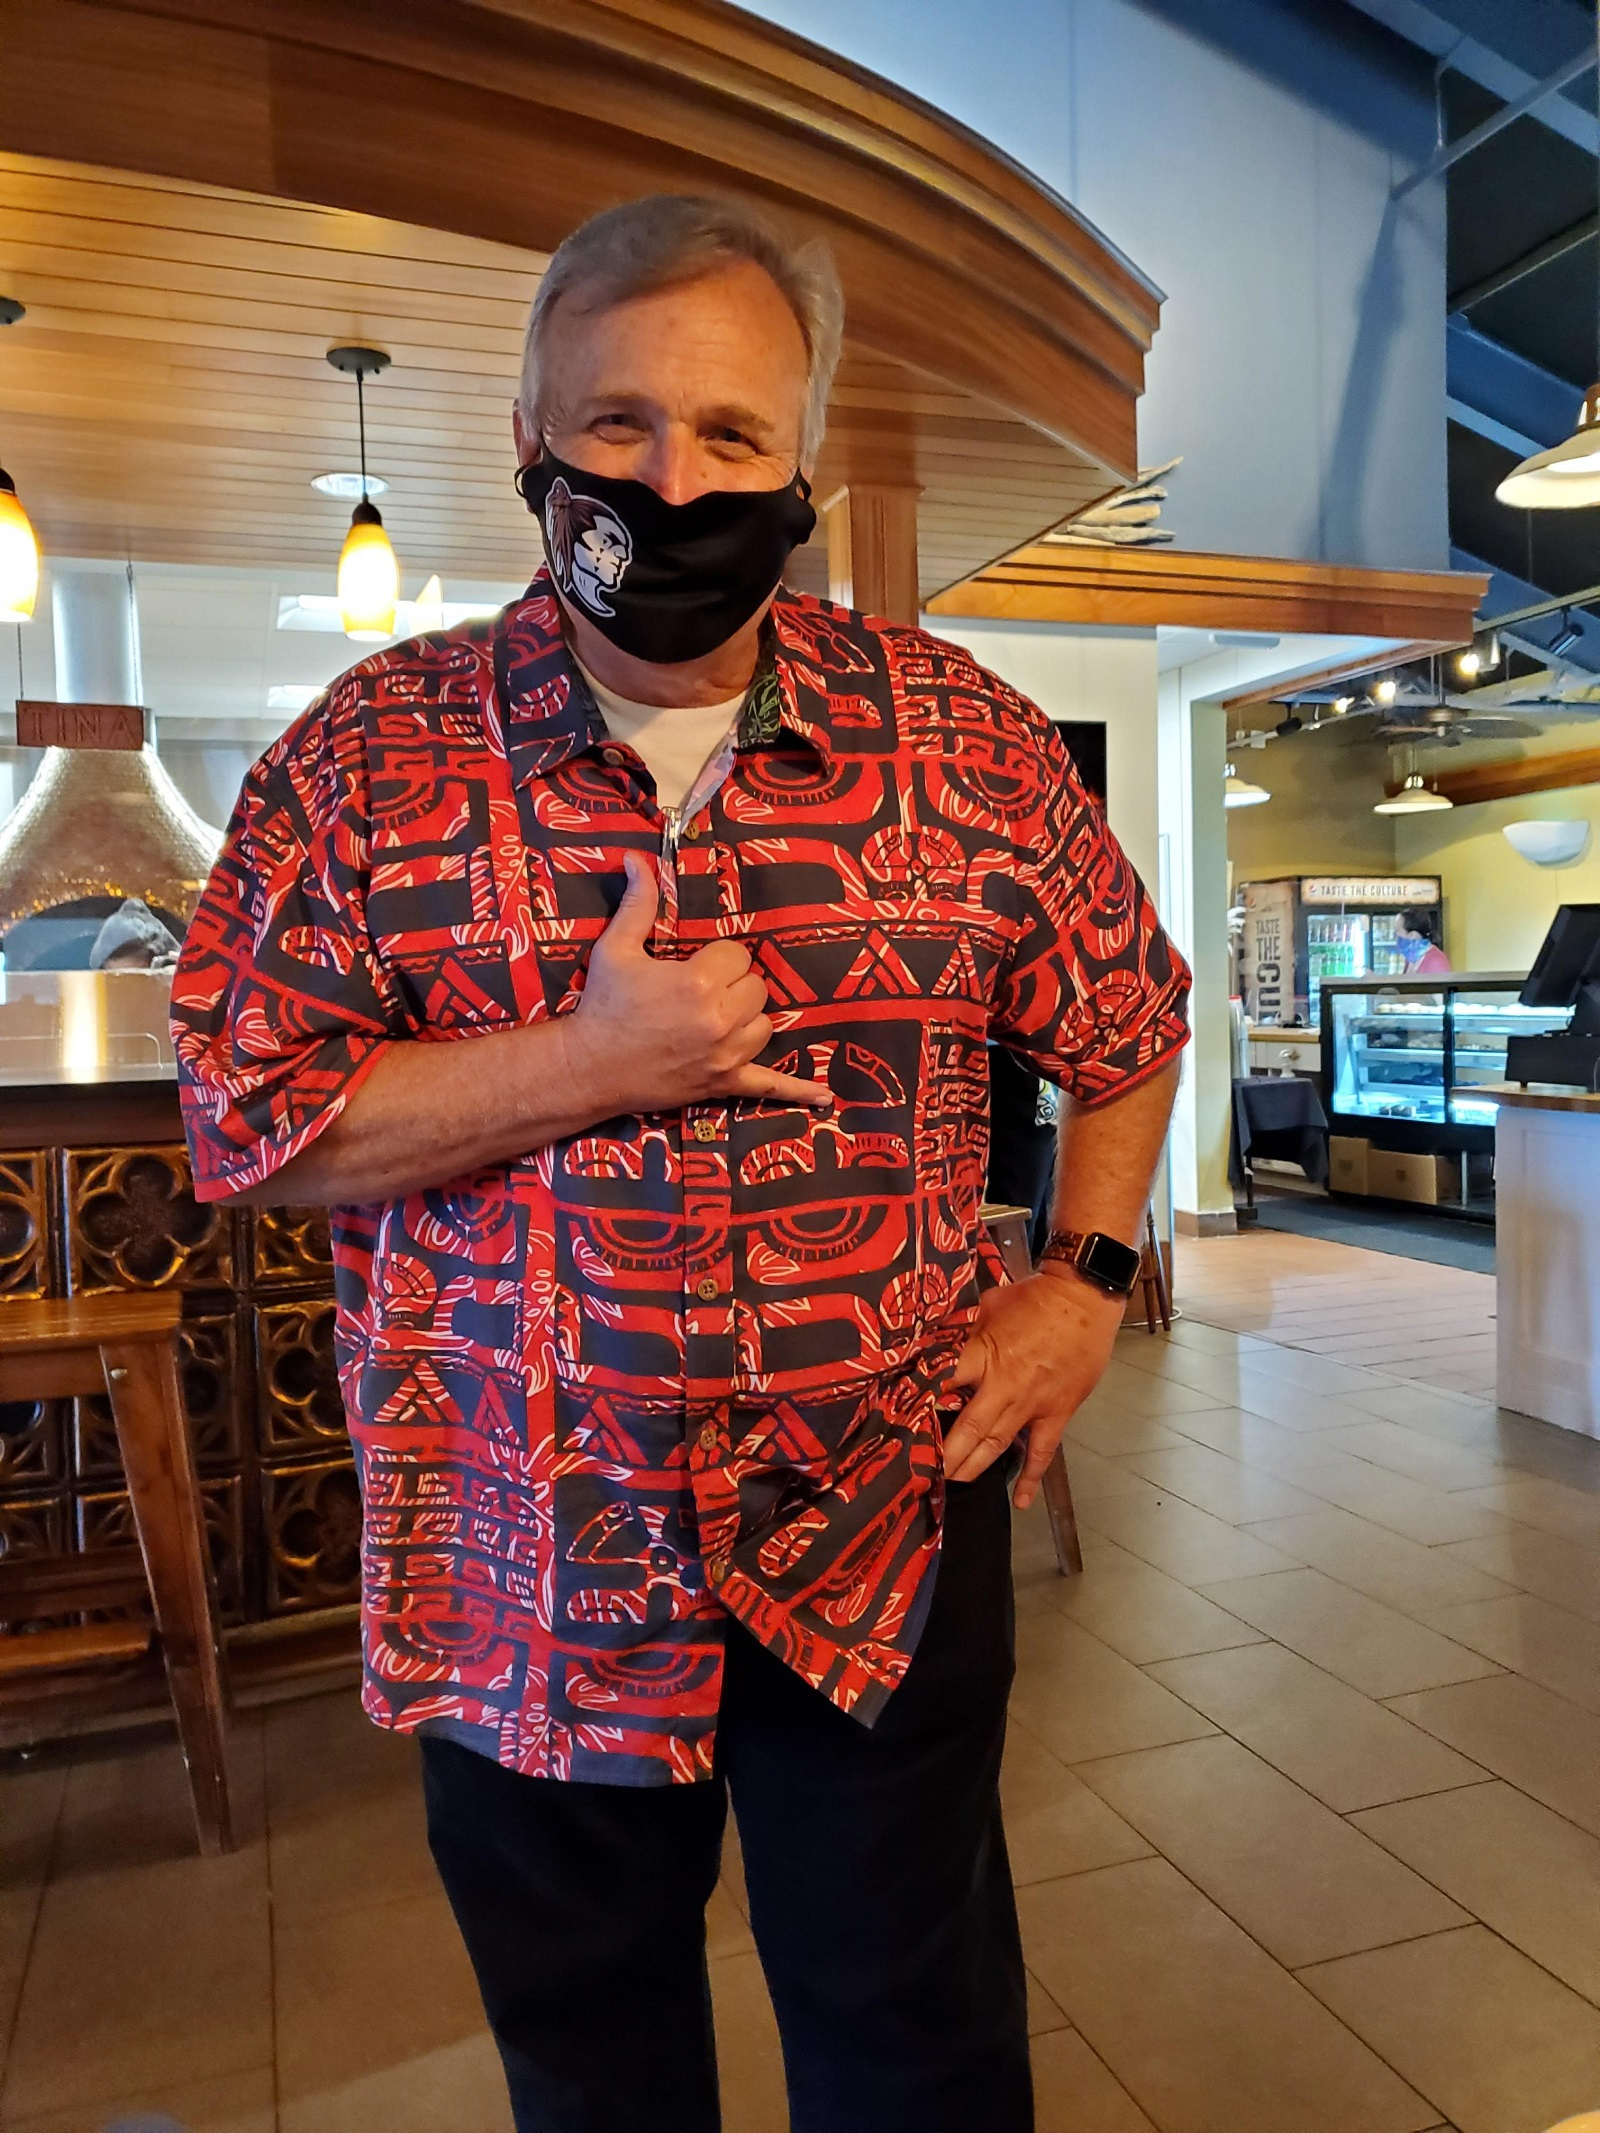 Greg Maples, the Manager of Food Services at the Polynesian Cultural Center, in Pounders Restaurant